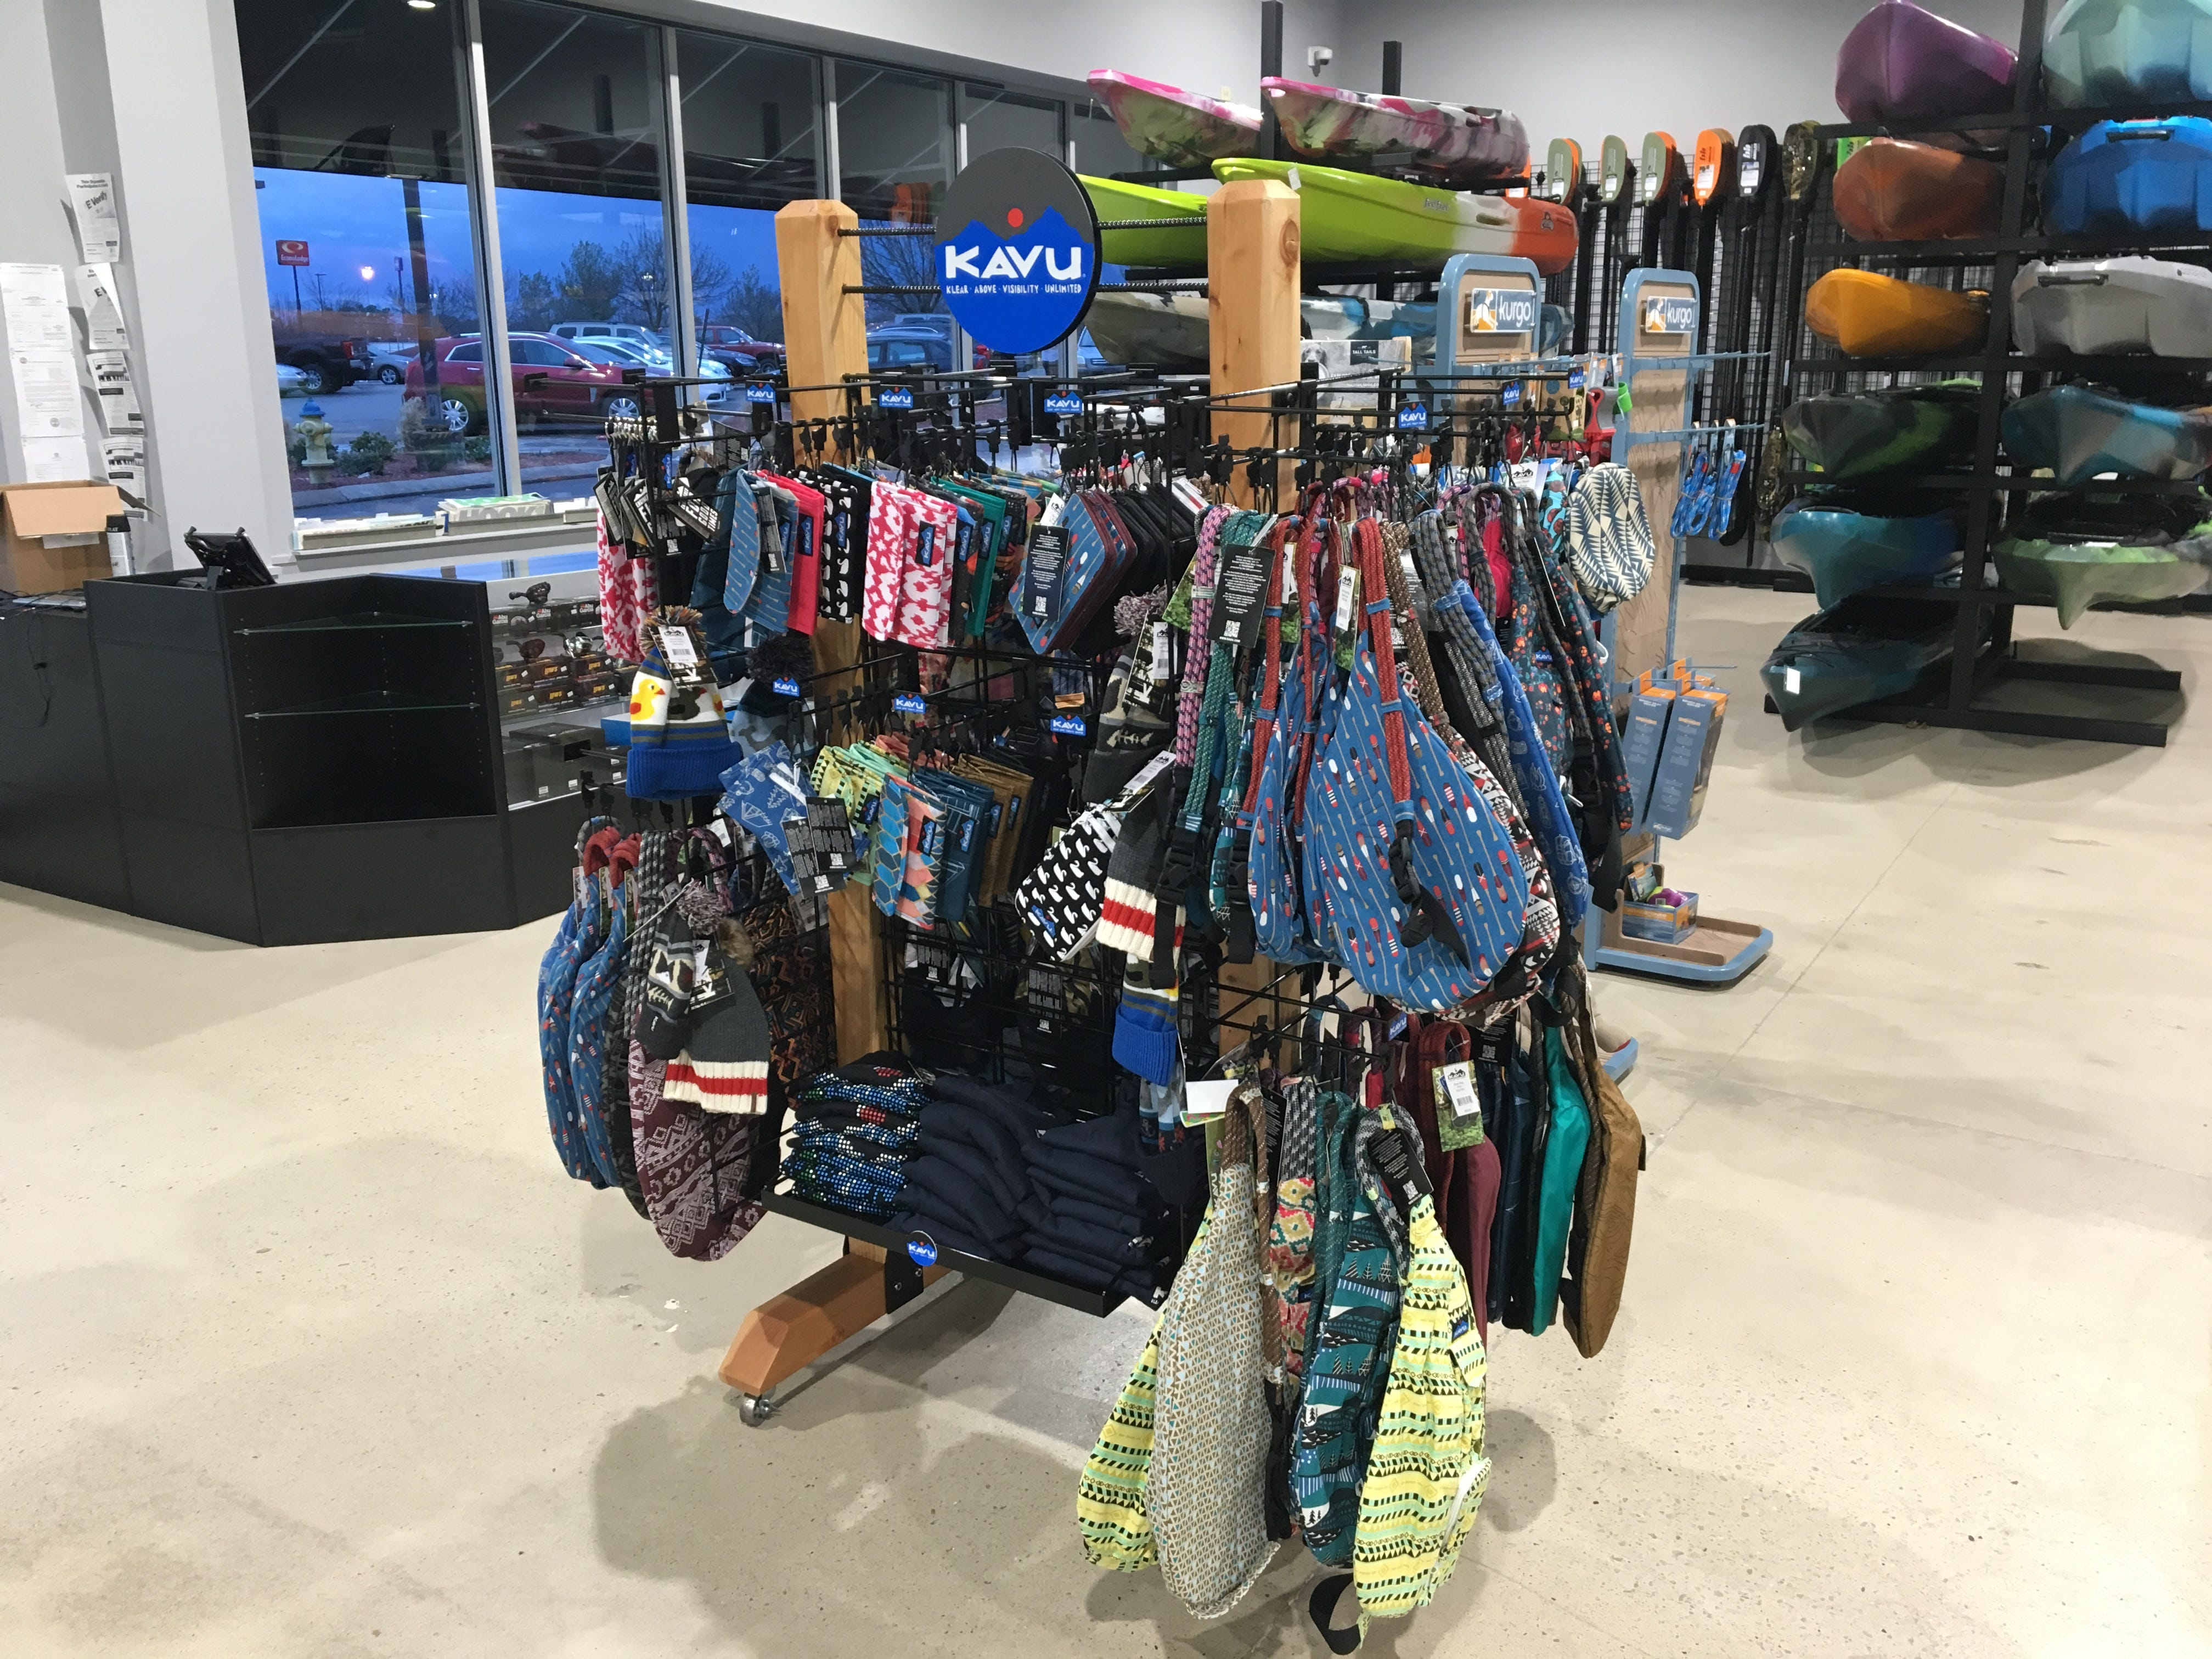 Hook 1 outfitters in Murfreesboro sells Kava brand outdoor accessories such as wallets and bags.